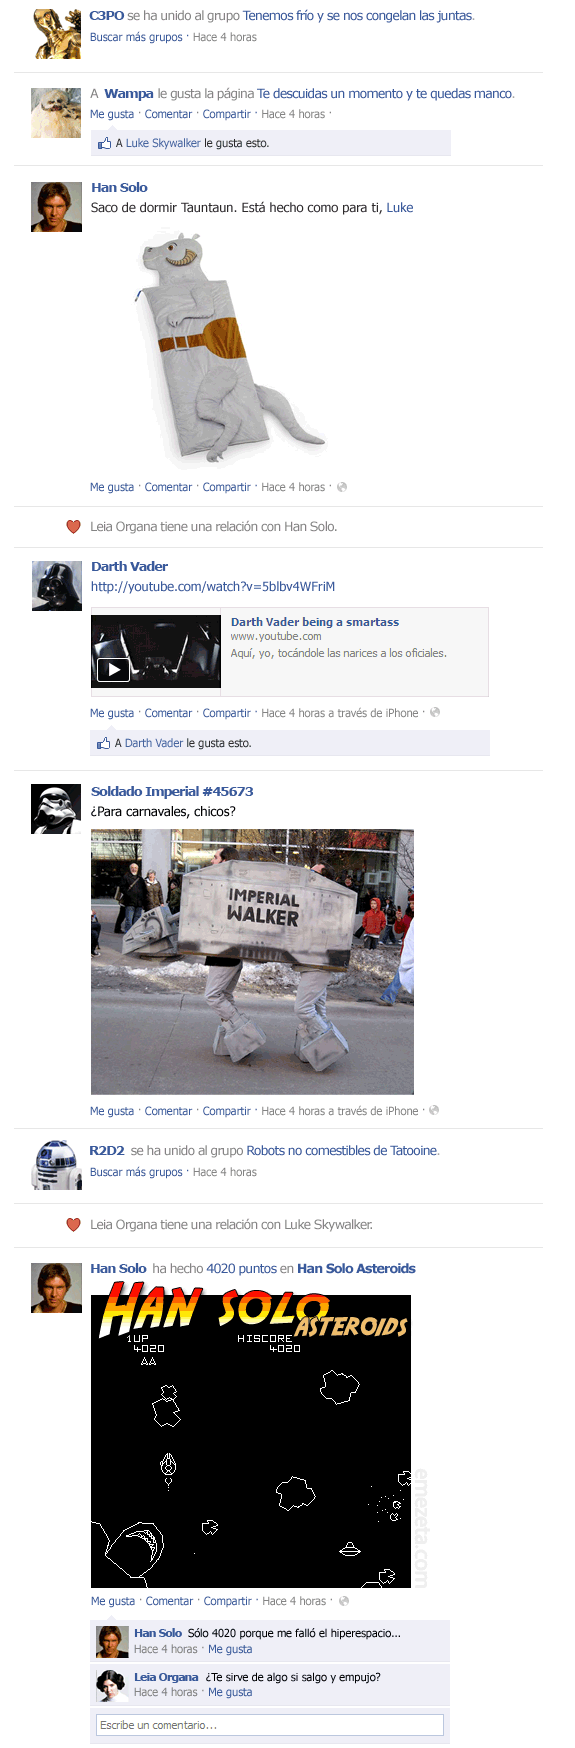 El Facebook de Star Wars: Episodio V (1)